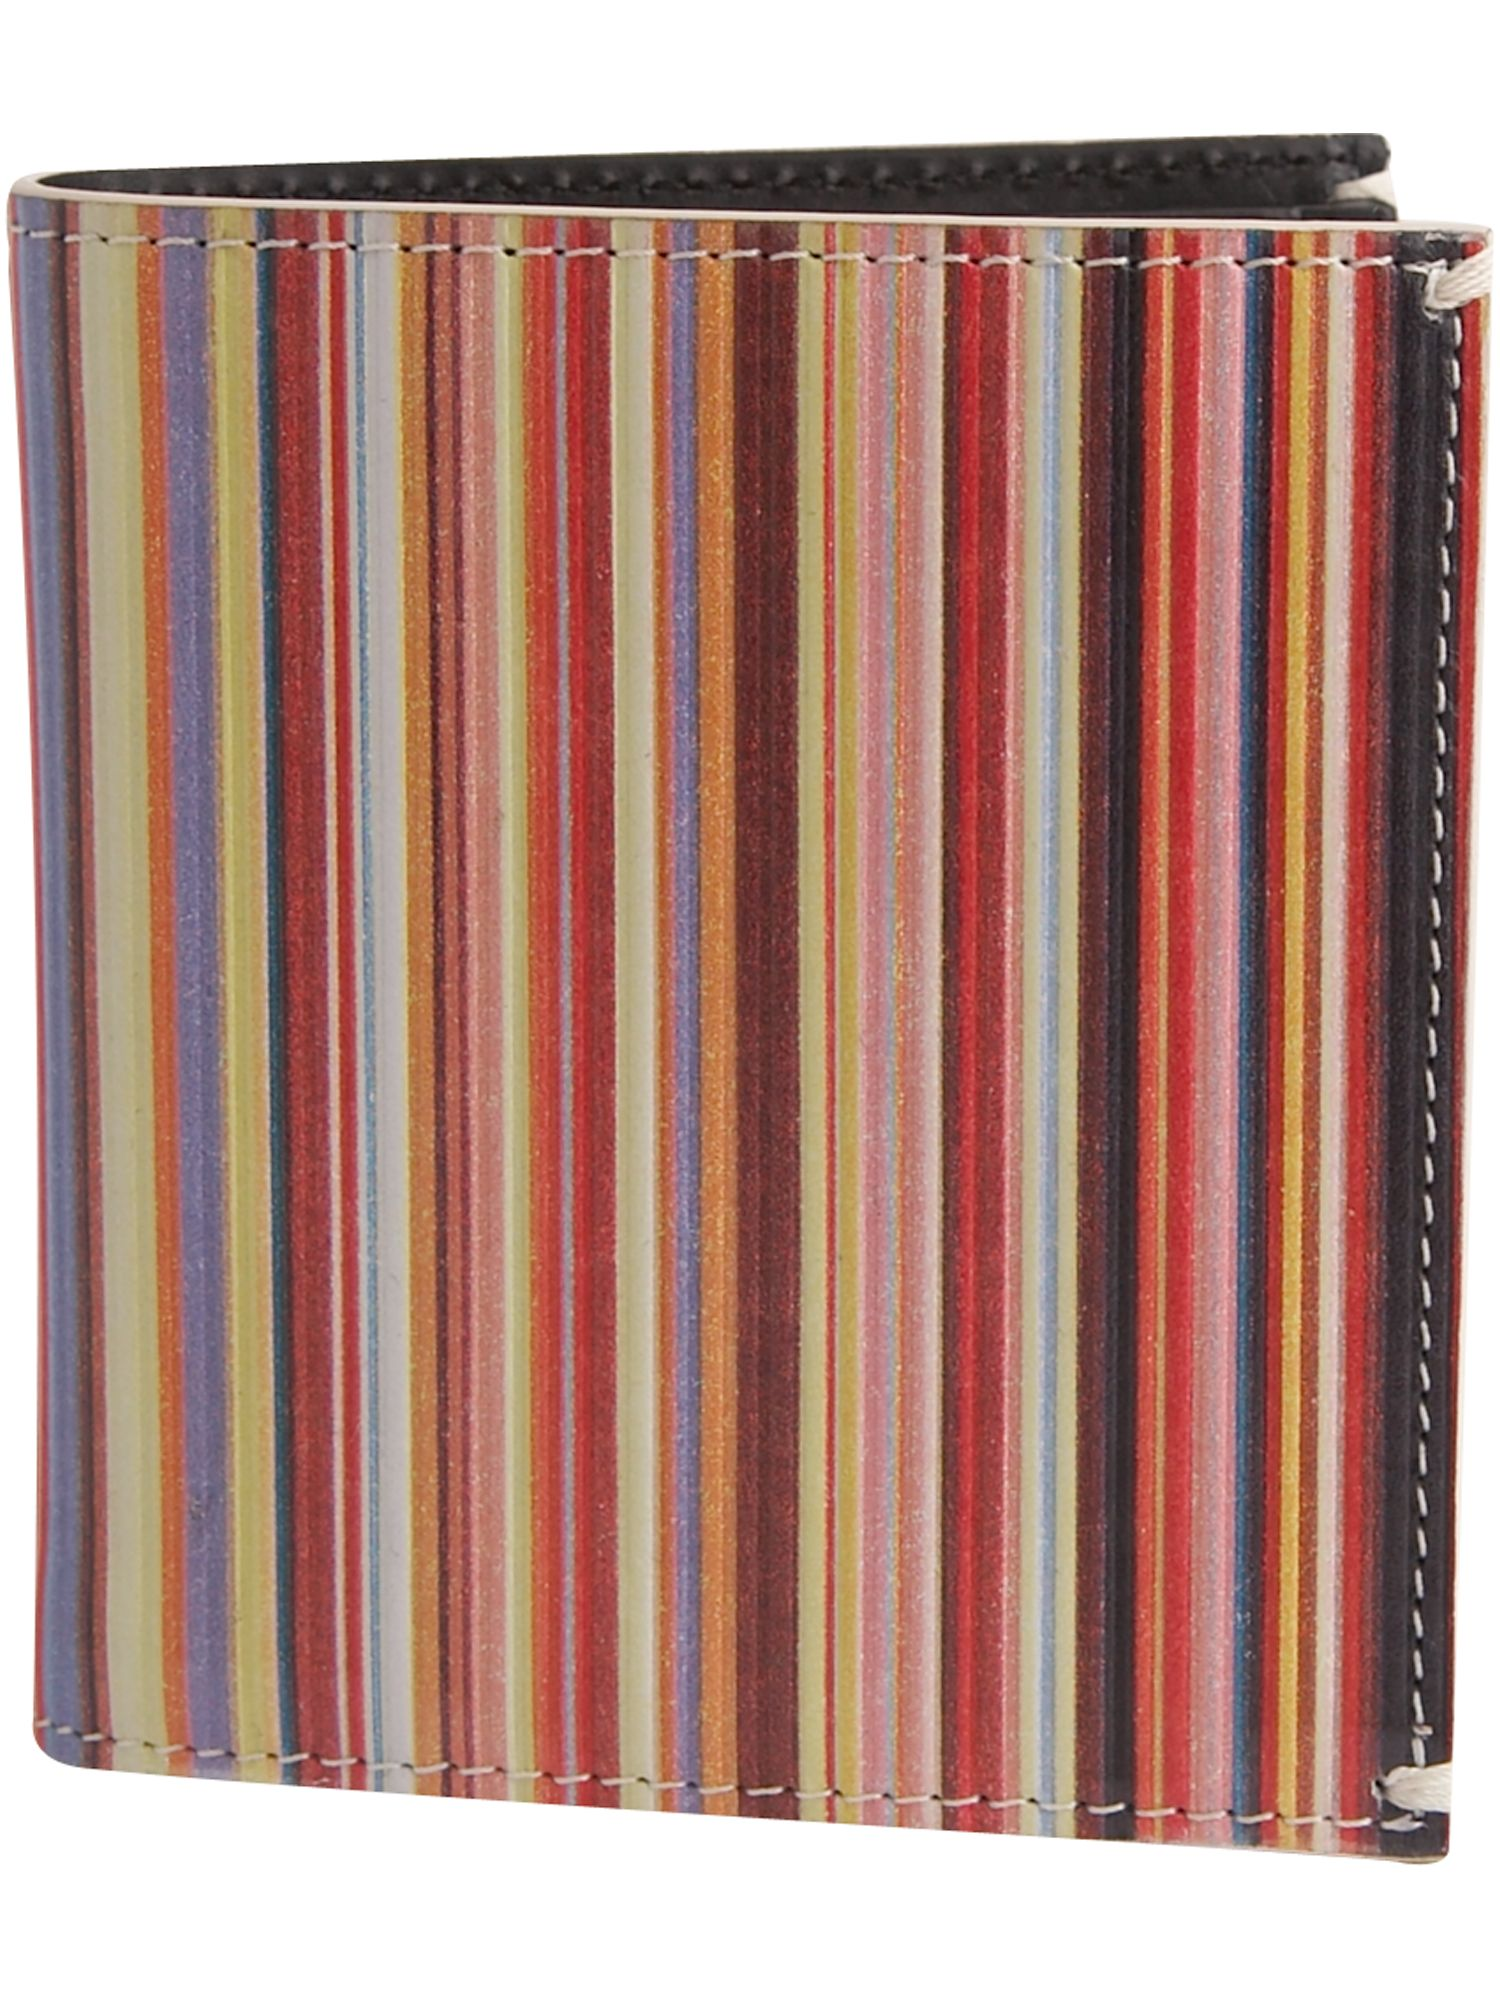 Paul Smith Billfold multi-stripe wallet with coin pocket product image